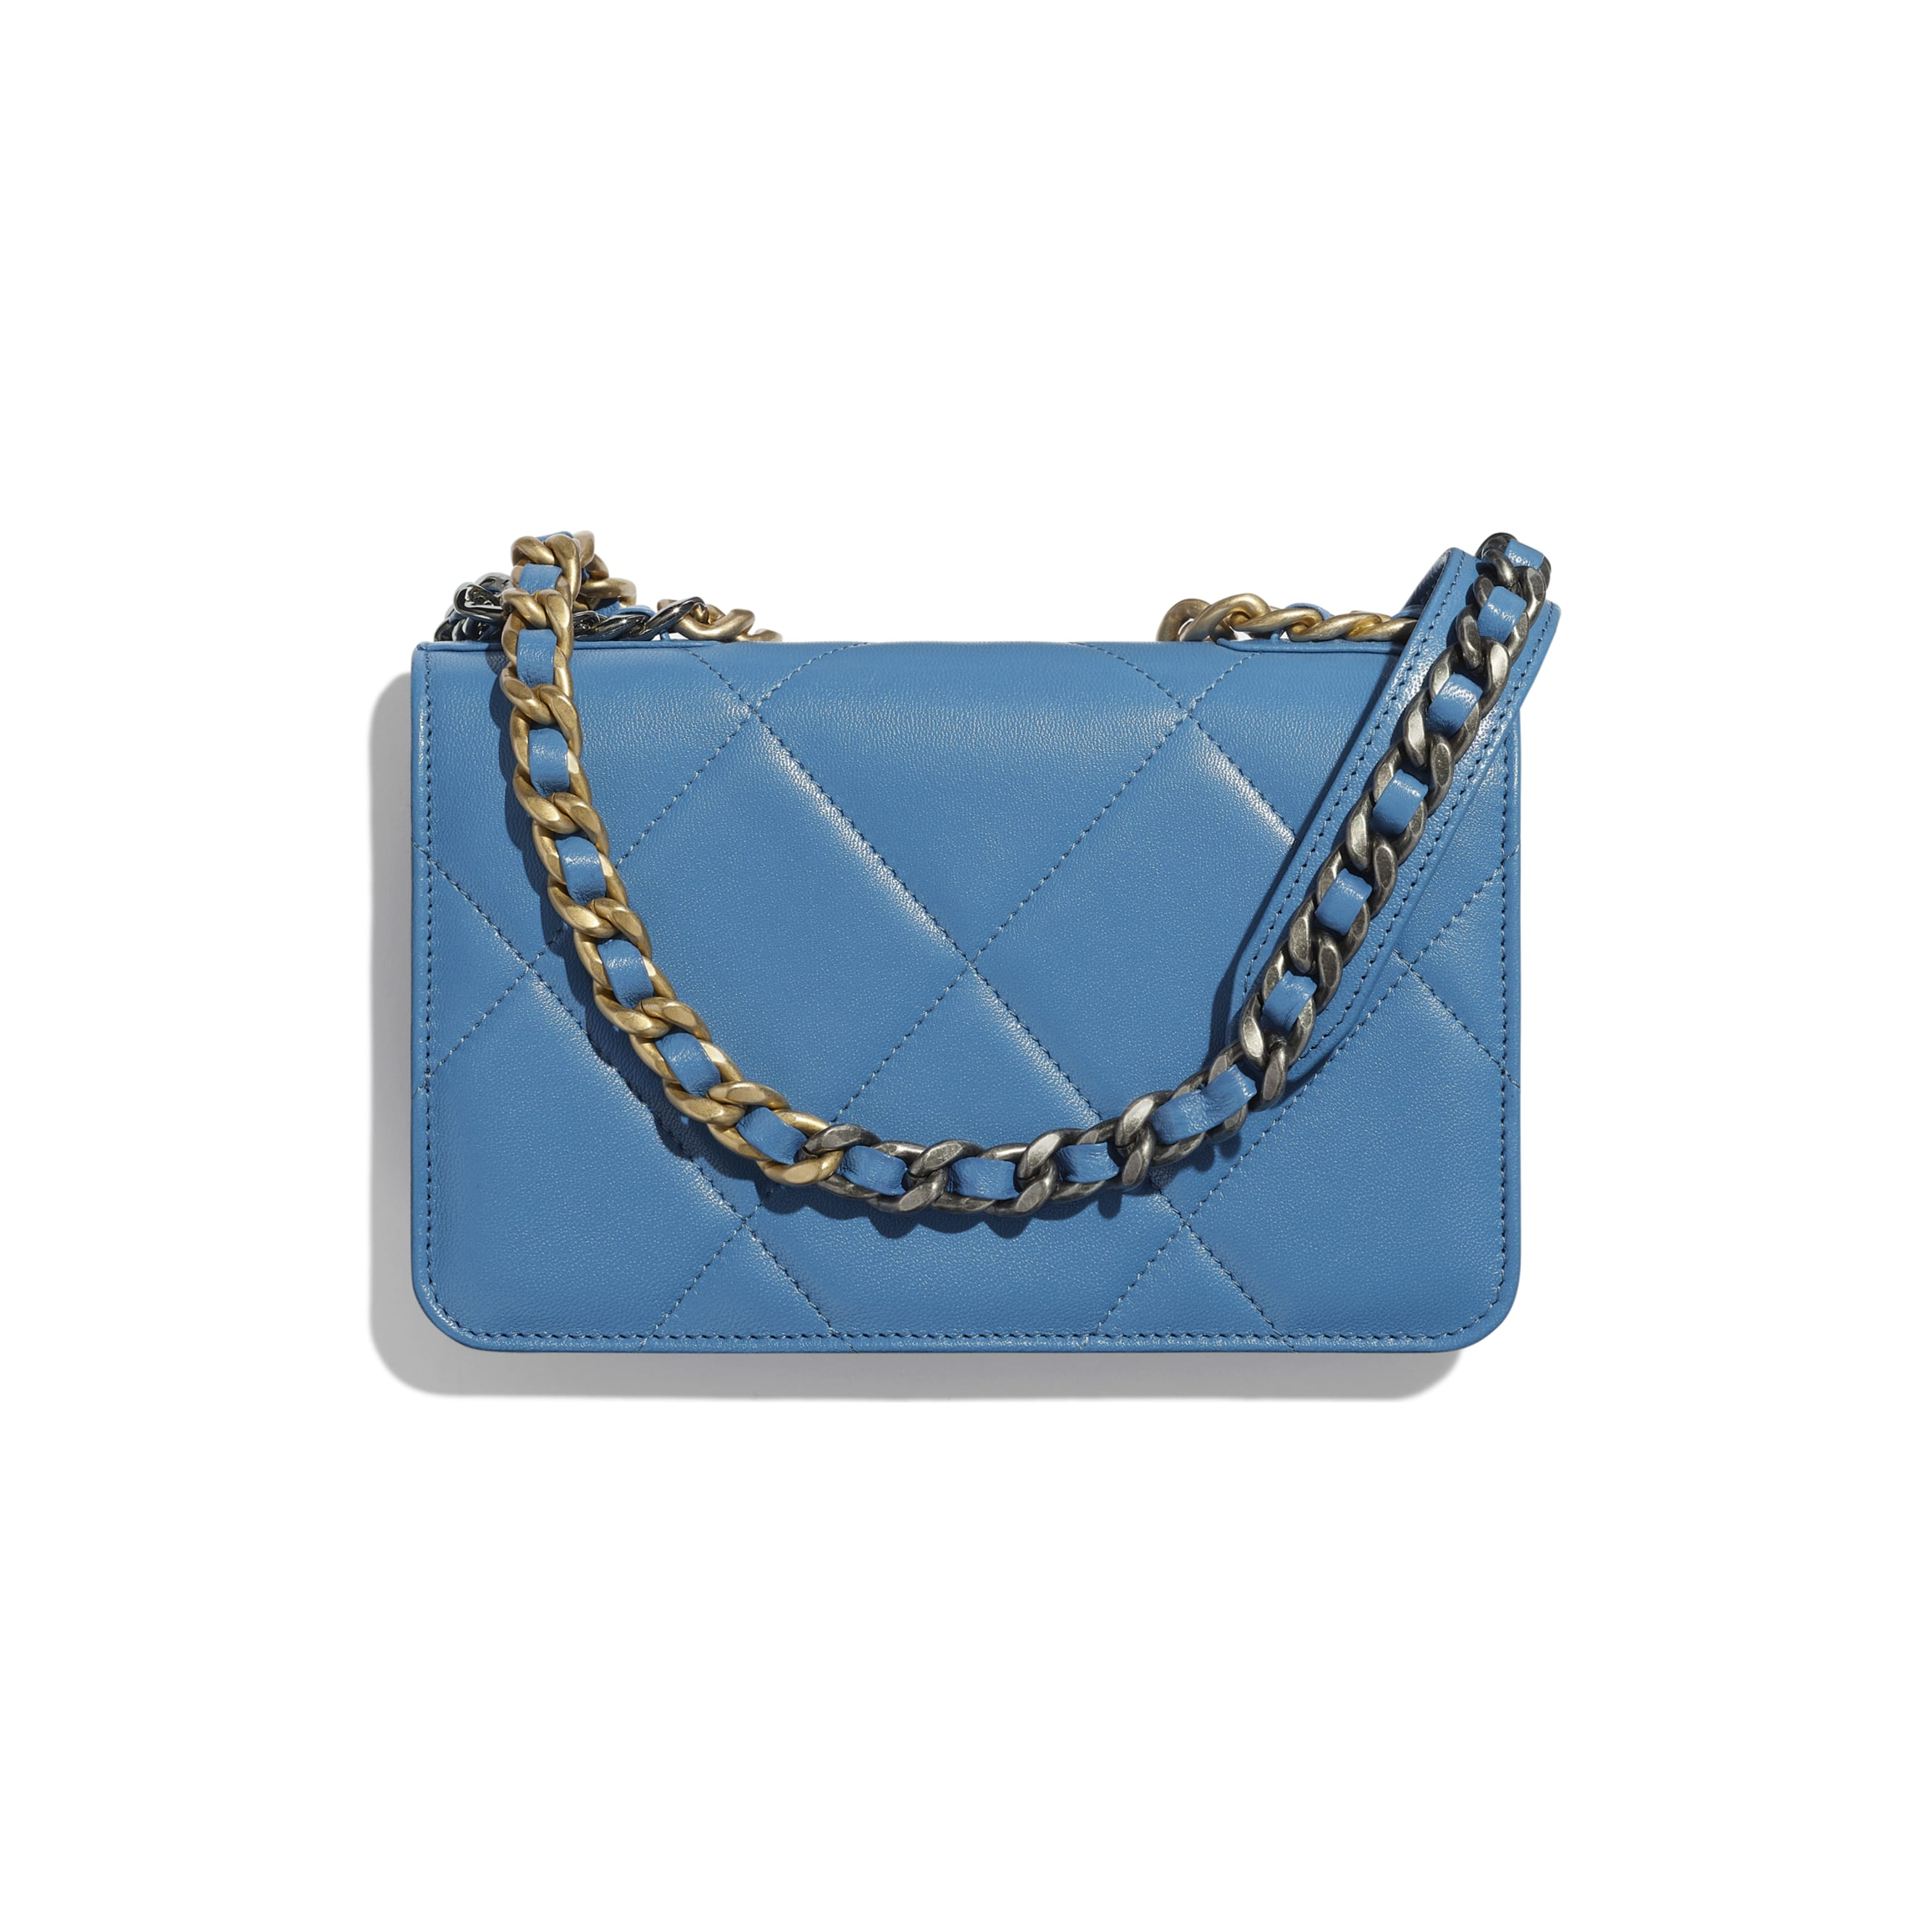 CHANEL 19 Wallet on Chain - Blue - Lambskin, Gold-Tone, Silver-Tone & Ruthenium-Finish Metal - Alternative view - see standard sized version